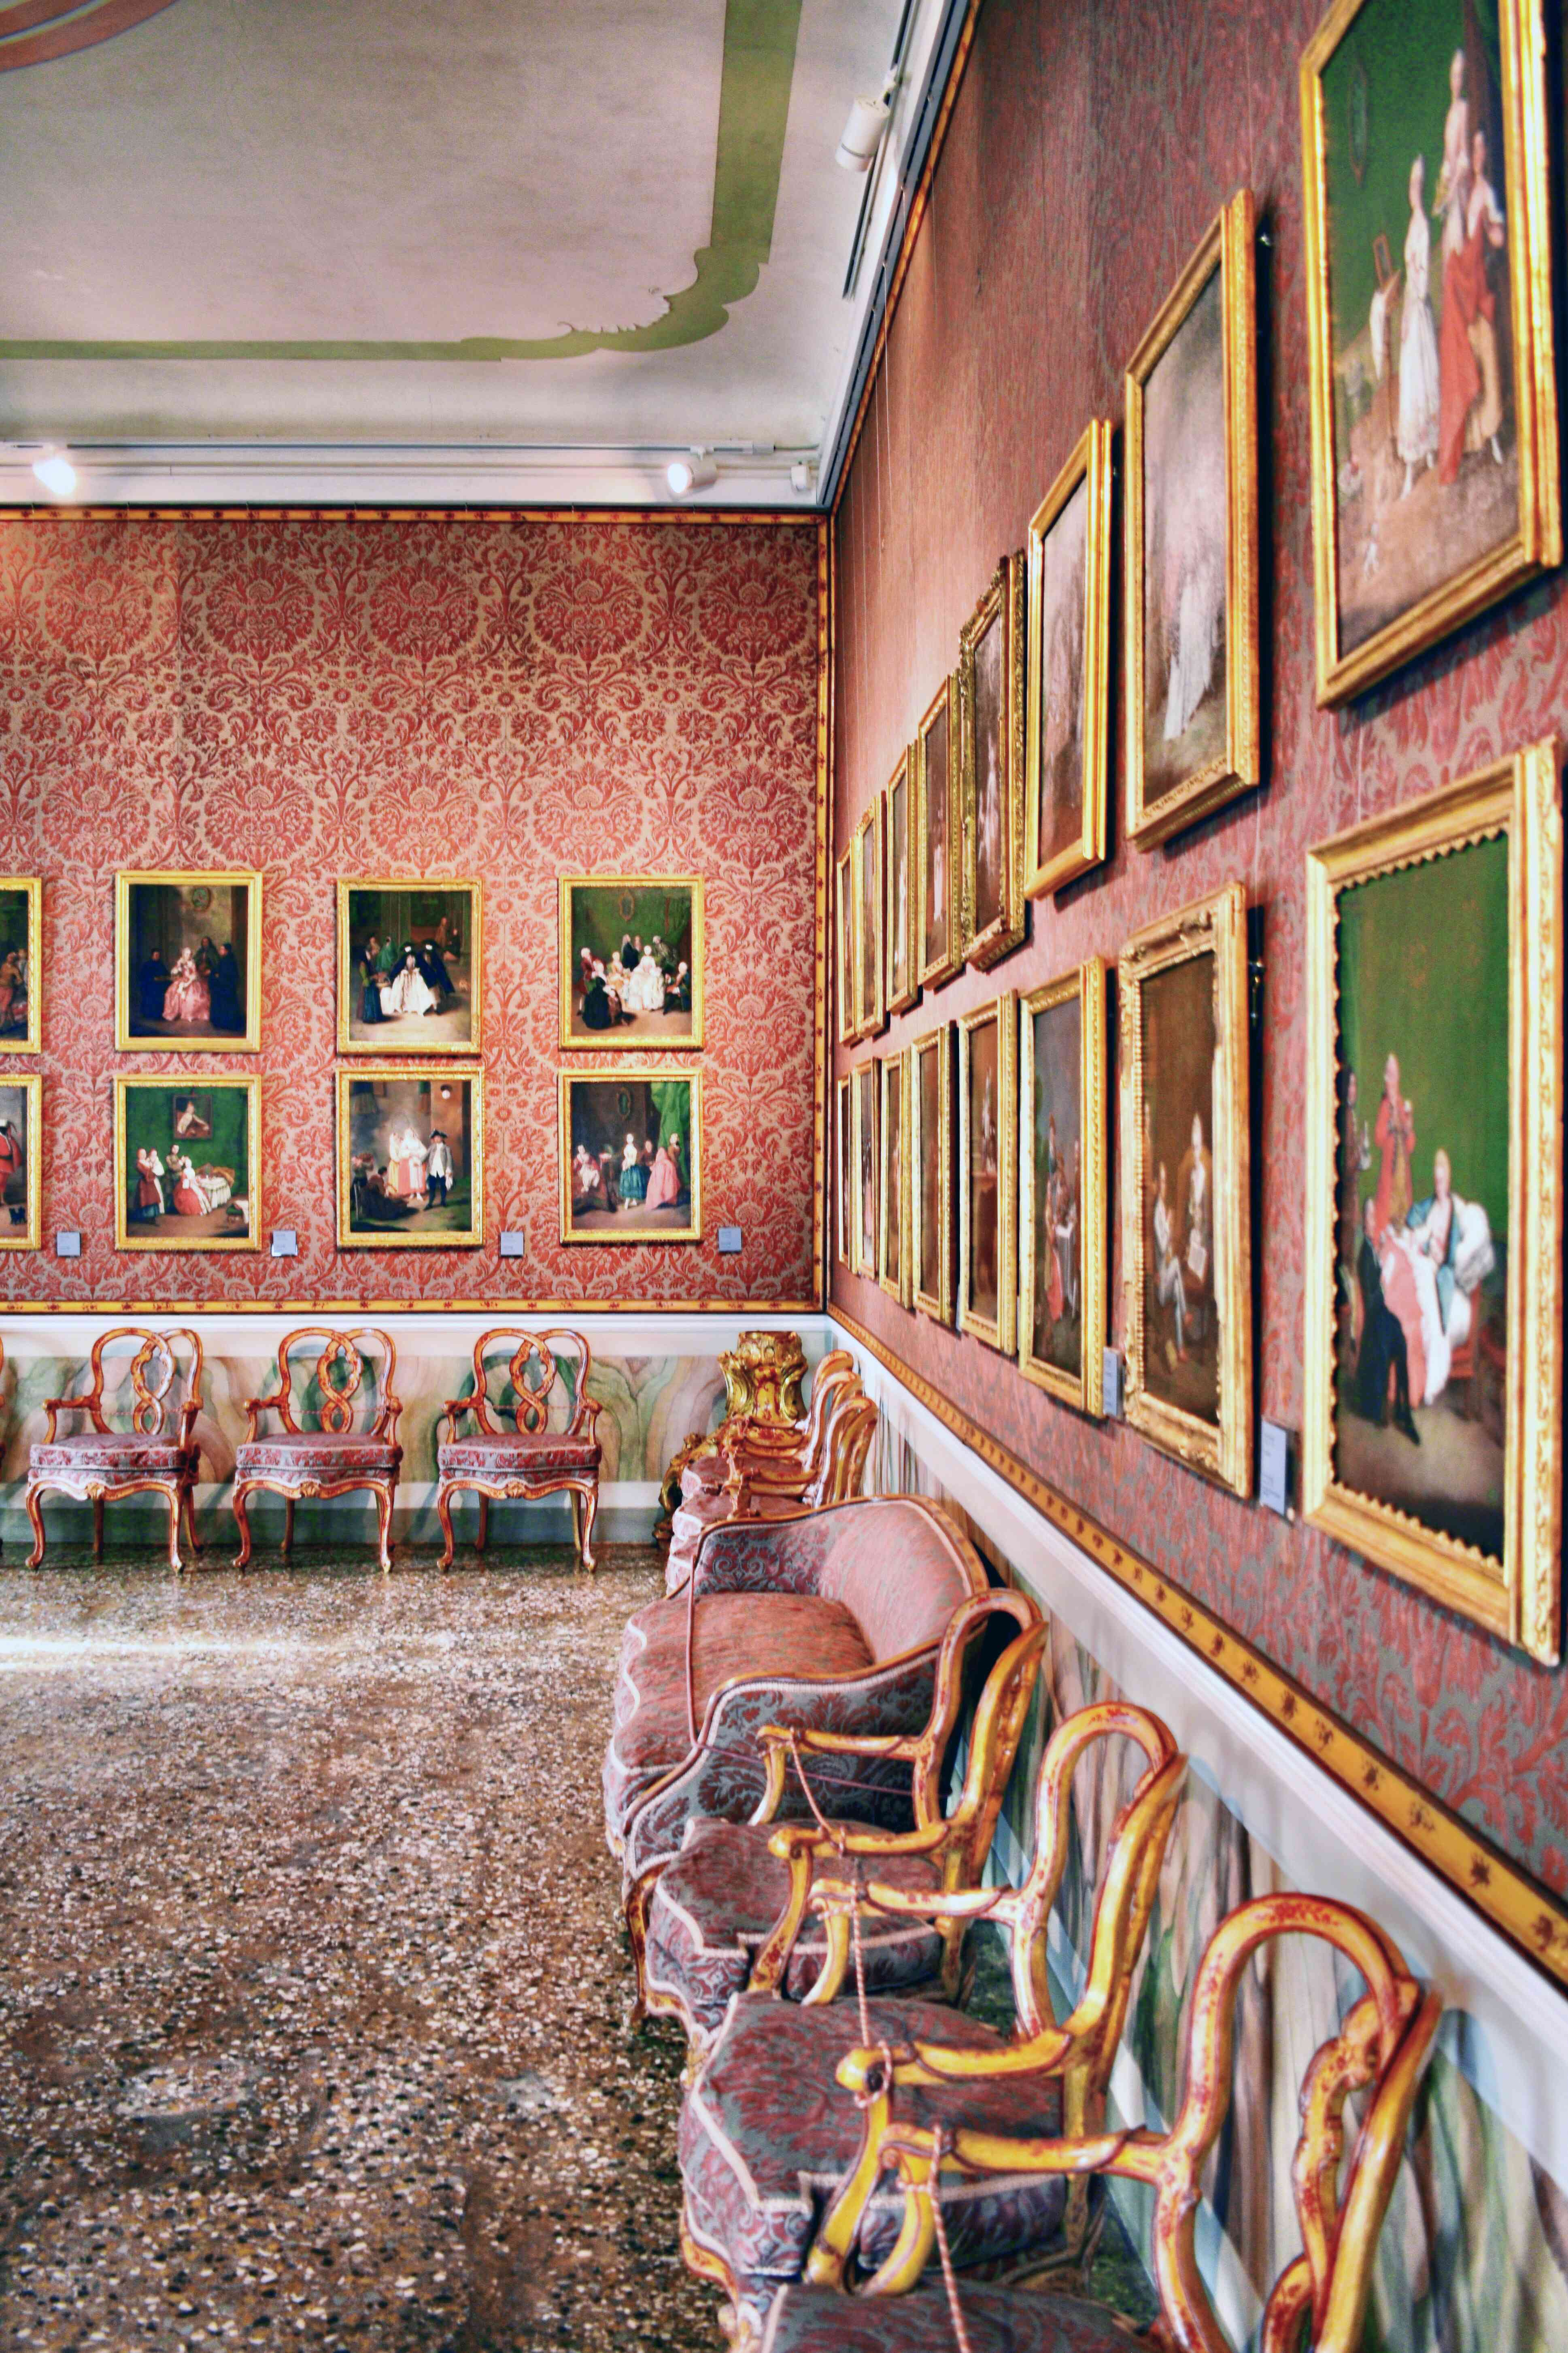 A bright pink room with green portraits and pink seats